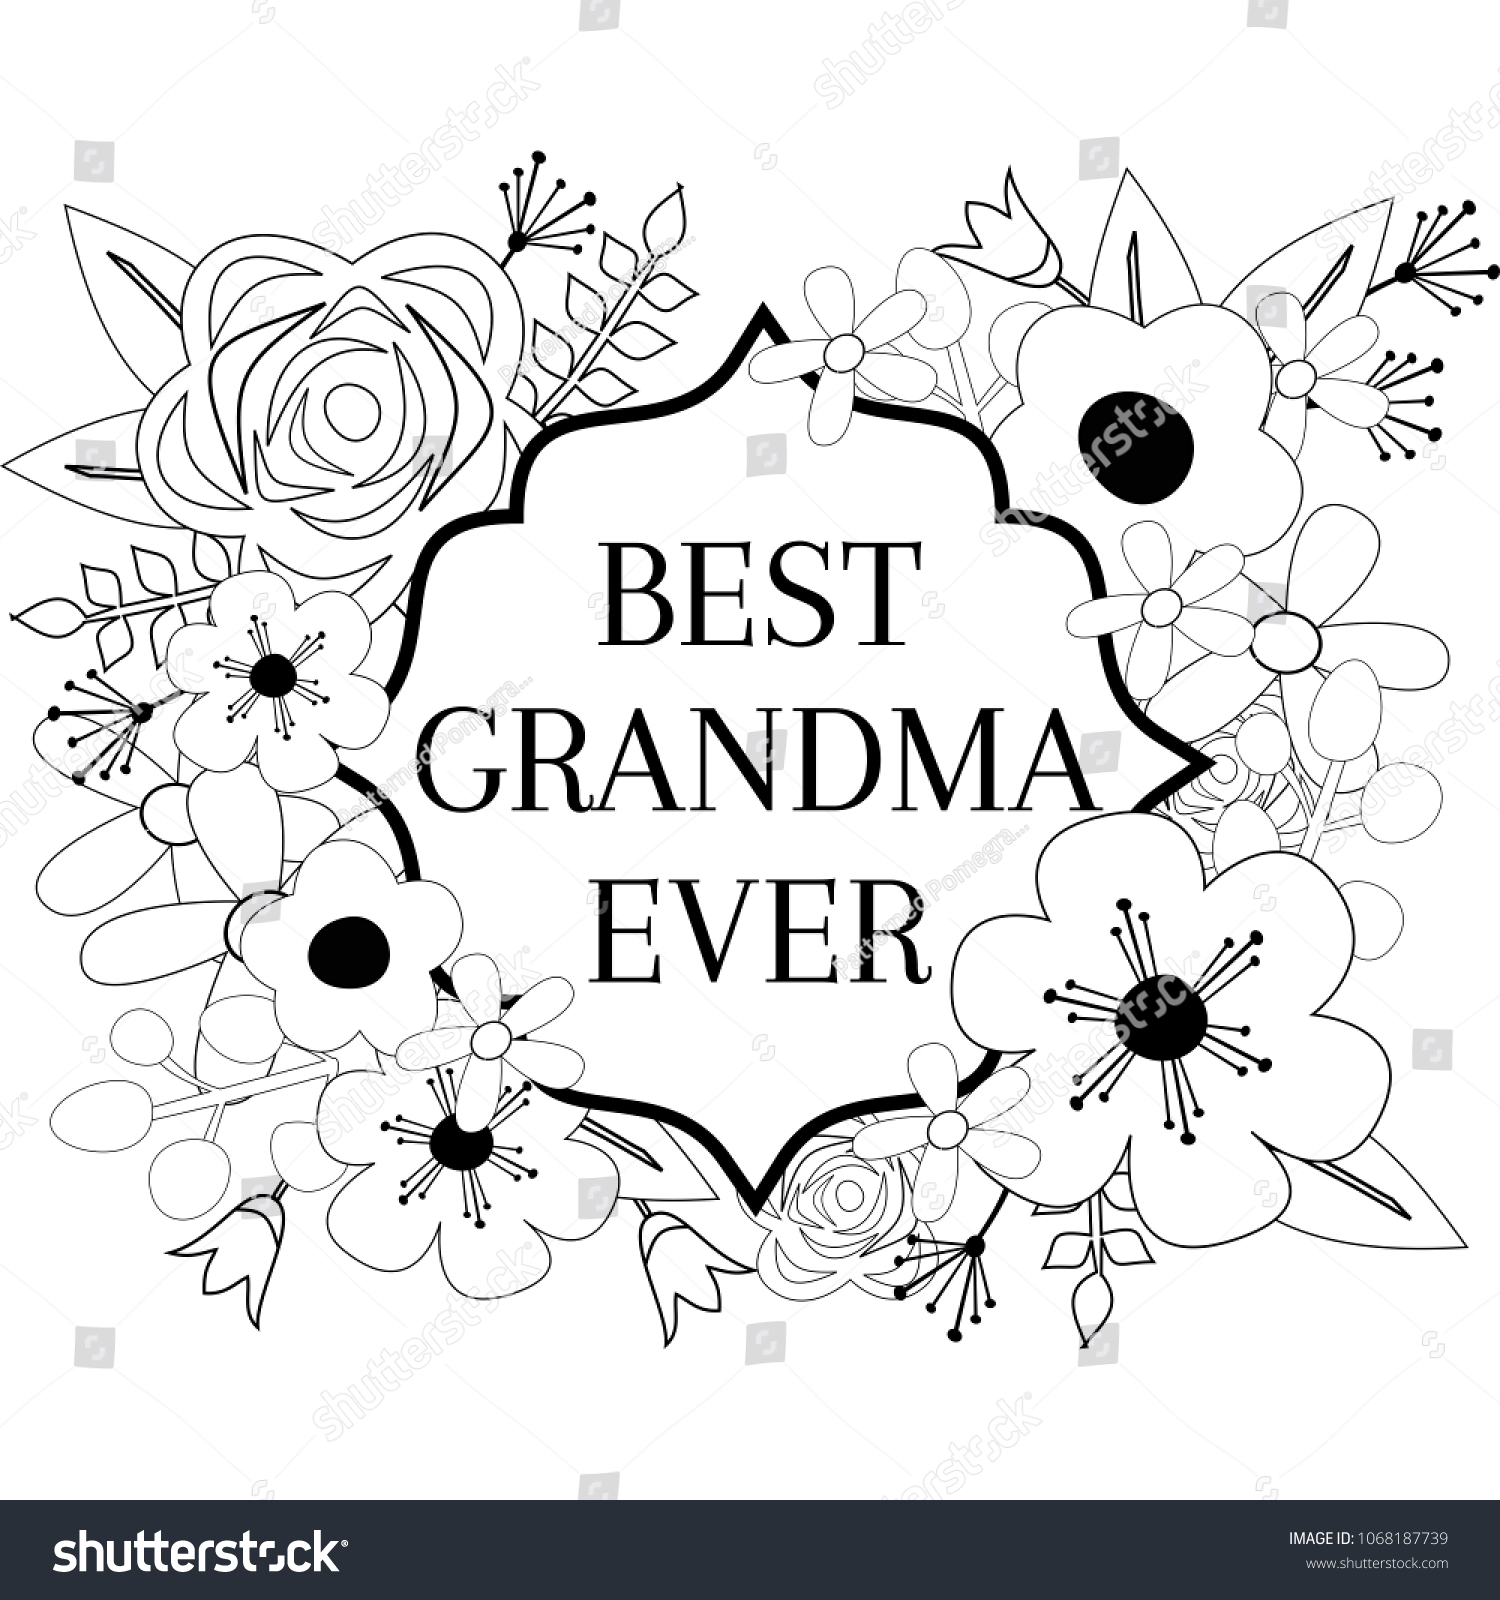 Best Grandma Ever Coloring Page Flower Stock Vector (Royalty Free ...